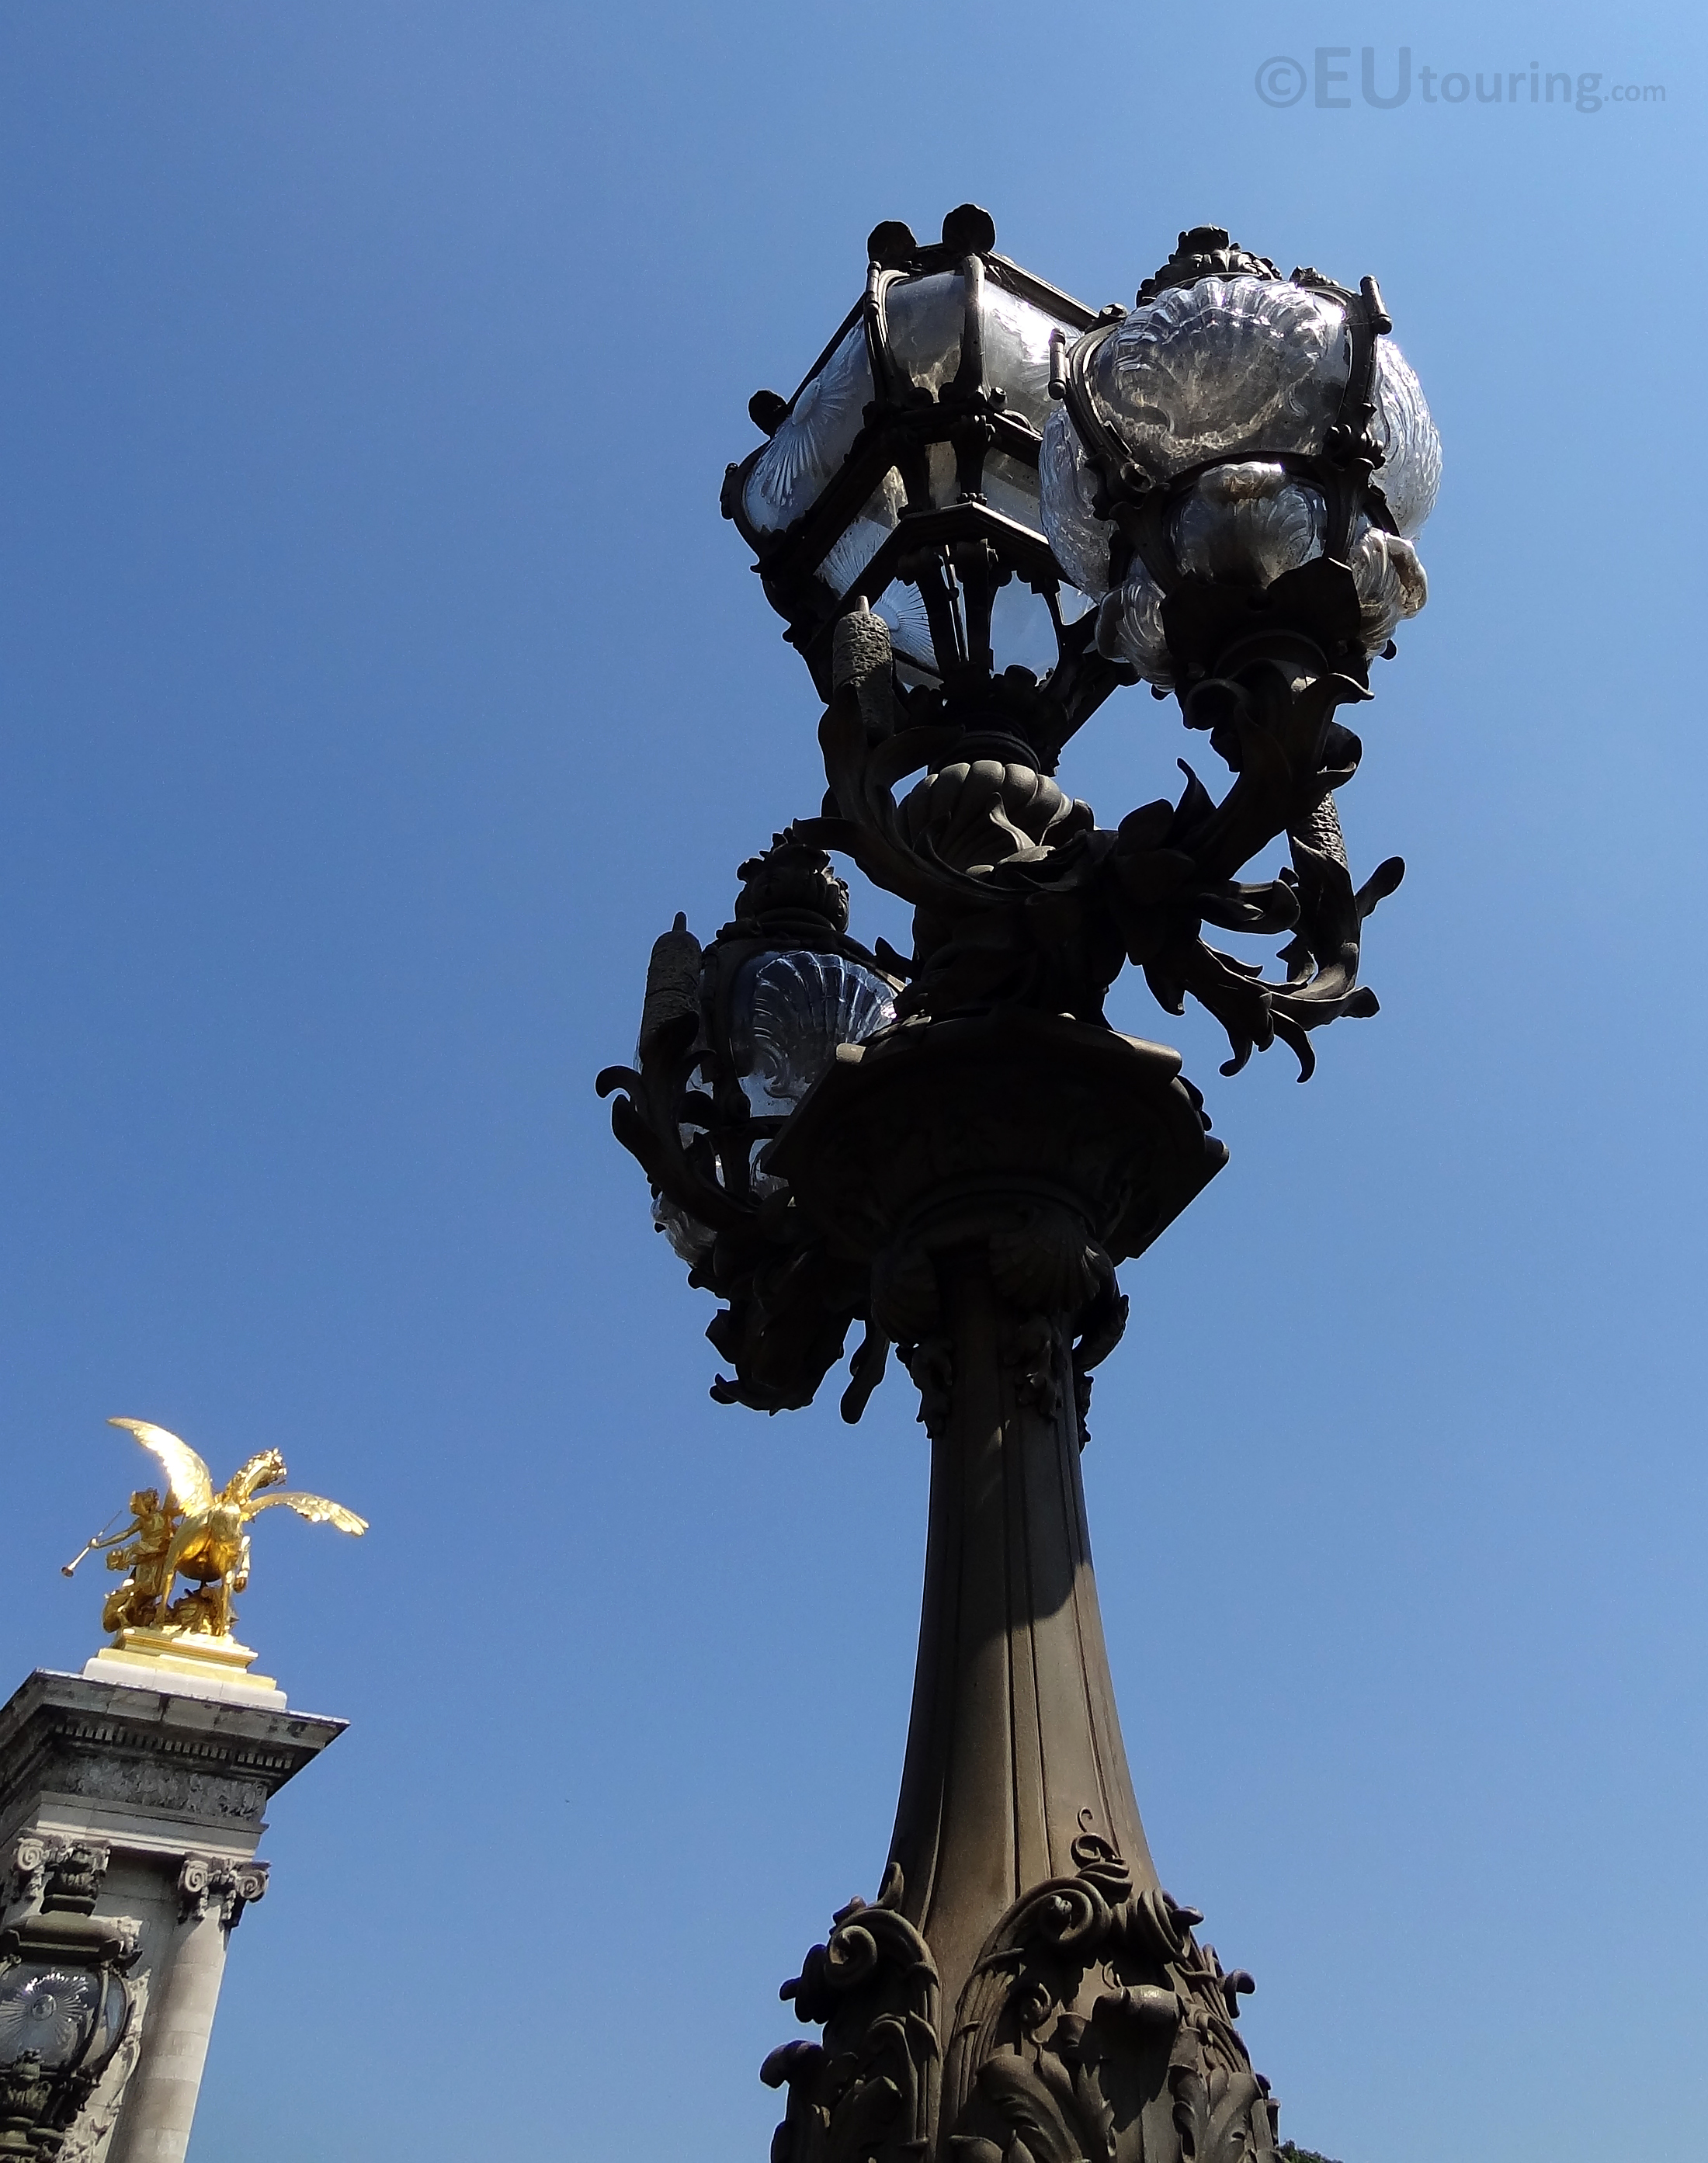 Ornate lamp post and glass work